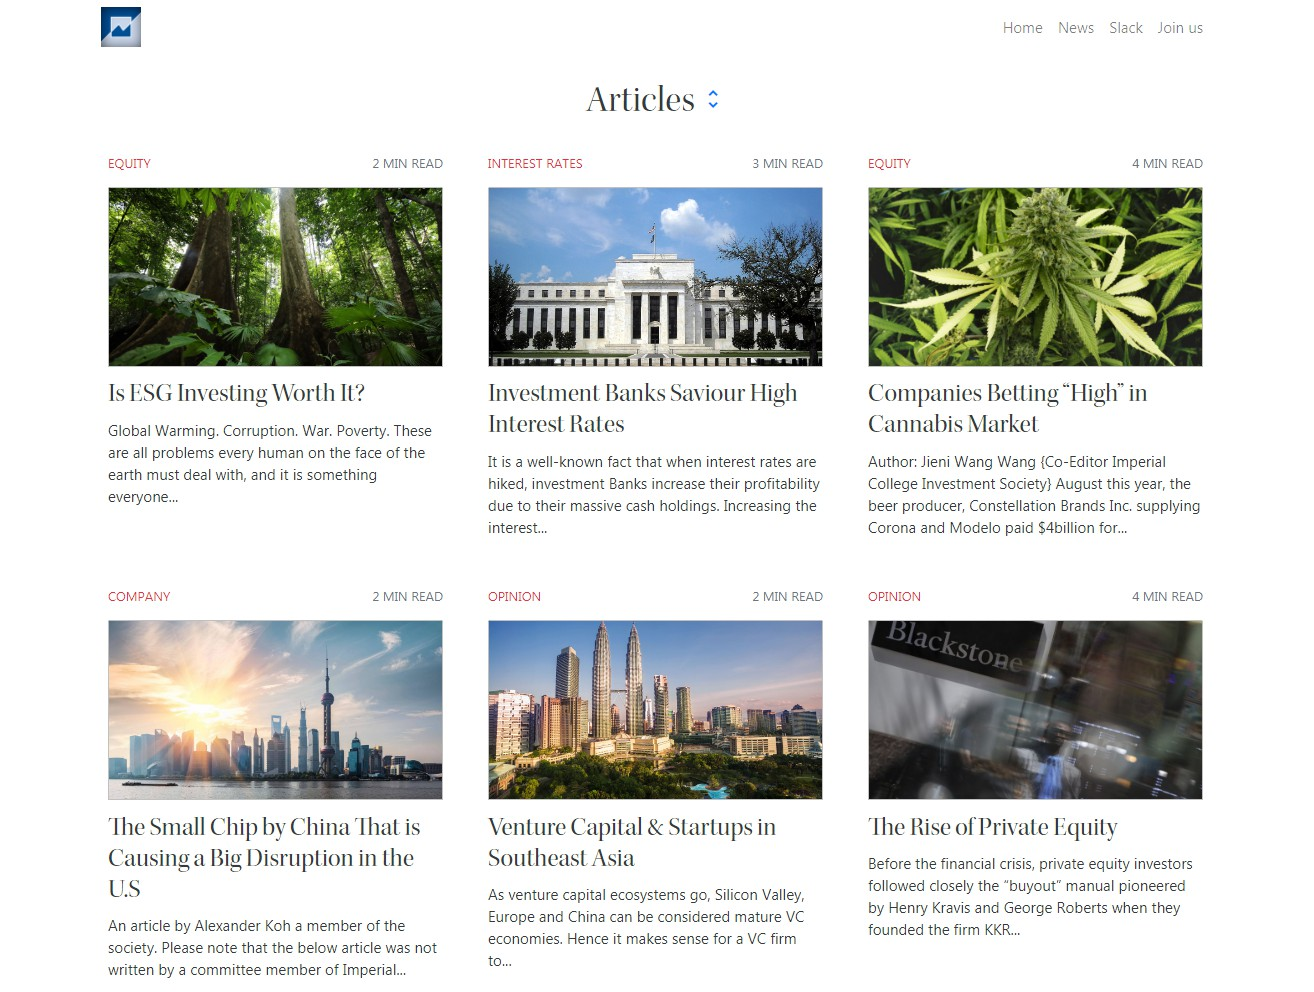 Ghost blog theme for ICIS